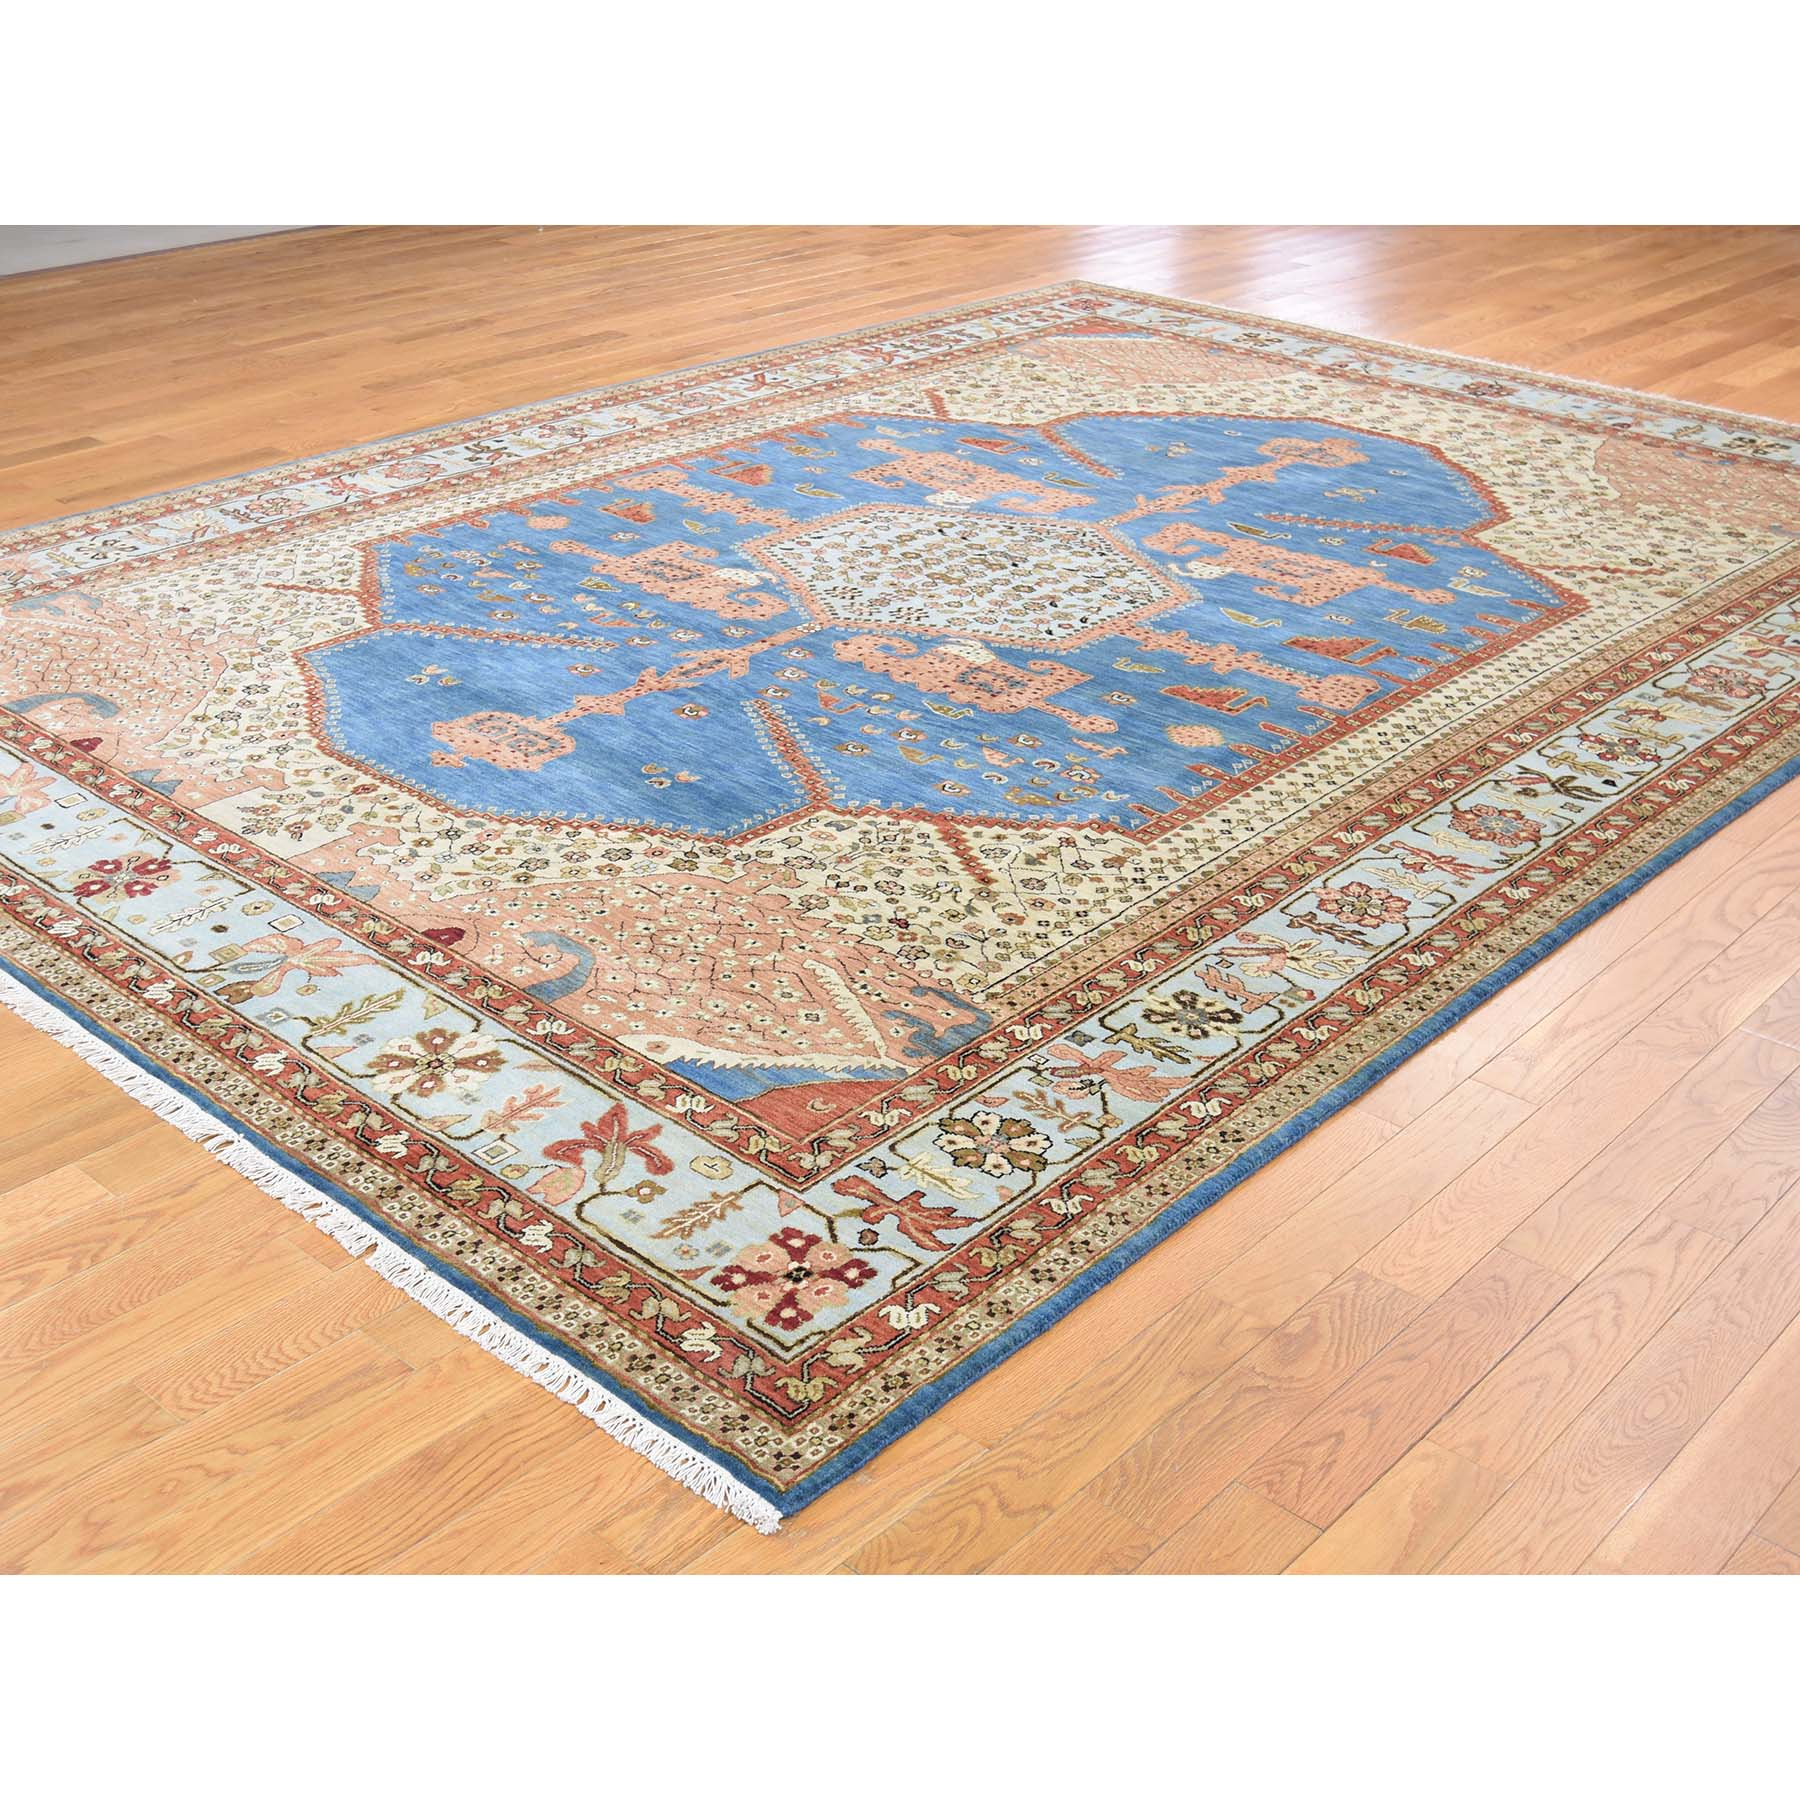 "8'10""x12'1"" Pure Wool Vegetable Dyes Bakshaish Hand-Knotted Oriental Rug"